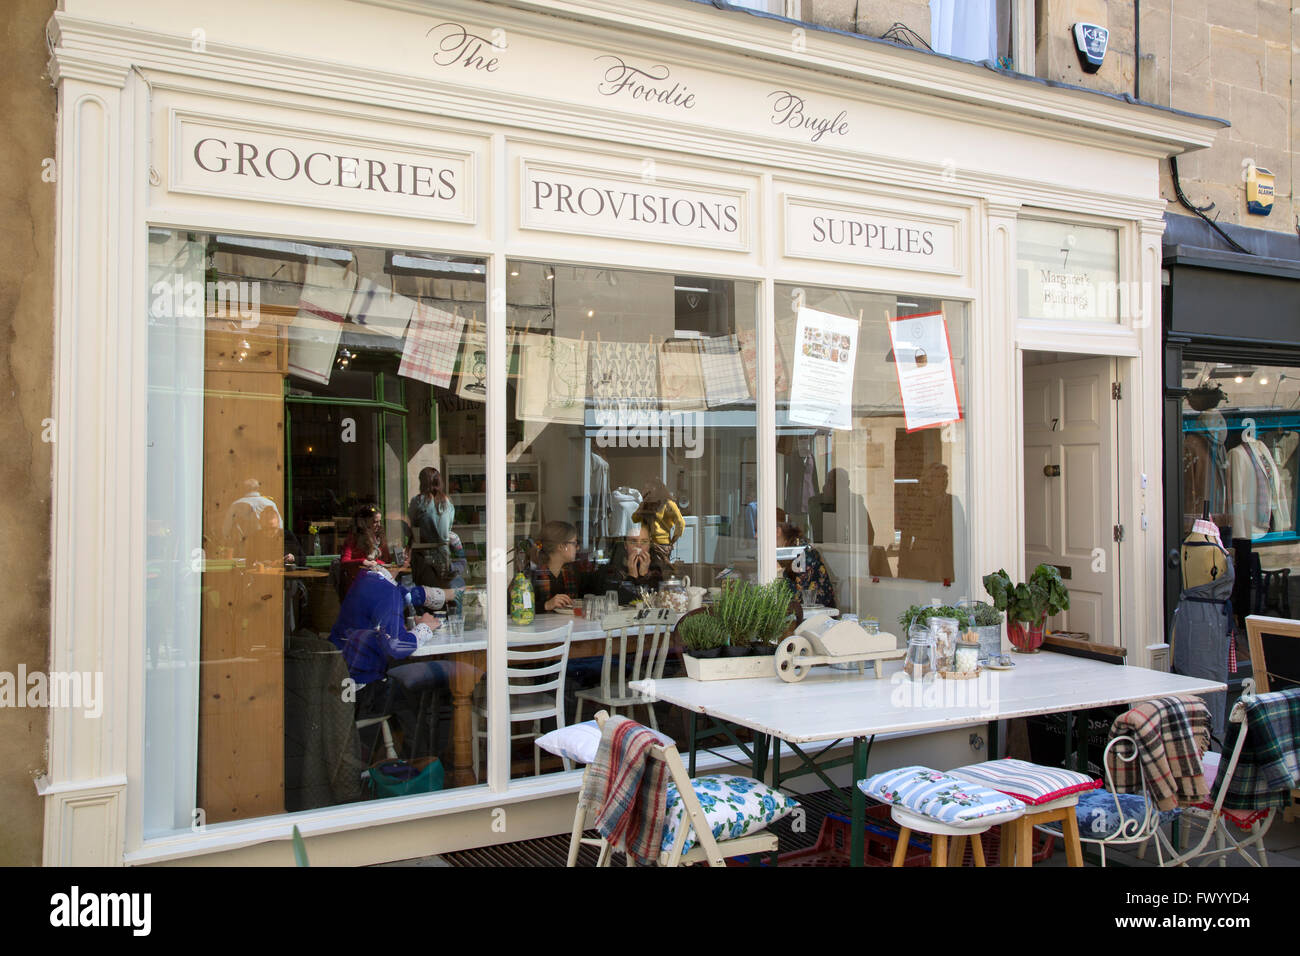 The Foodie Bugle Cafe and Grocer, Bath, England, UK - Stock Image